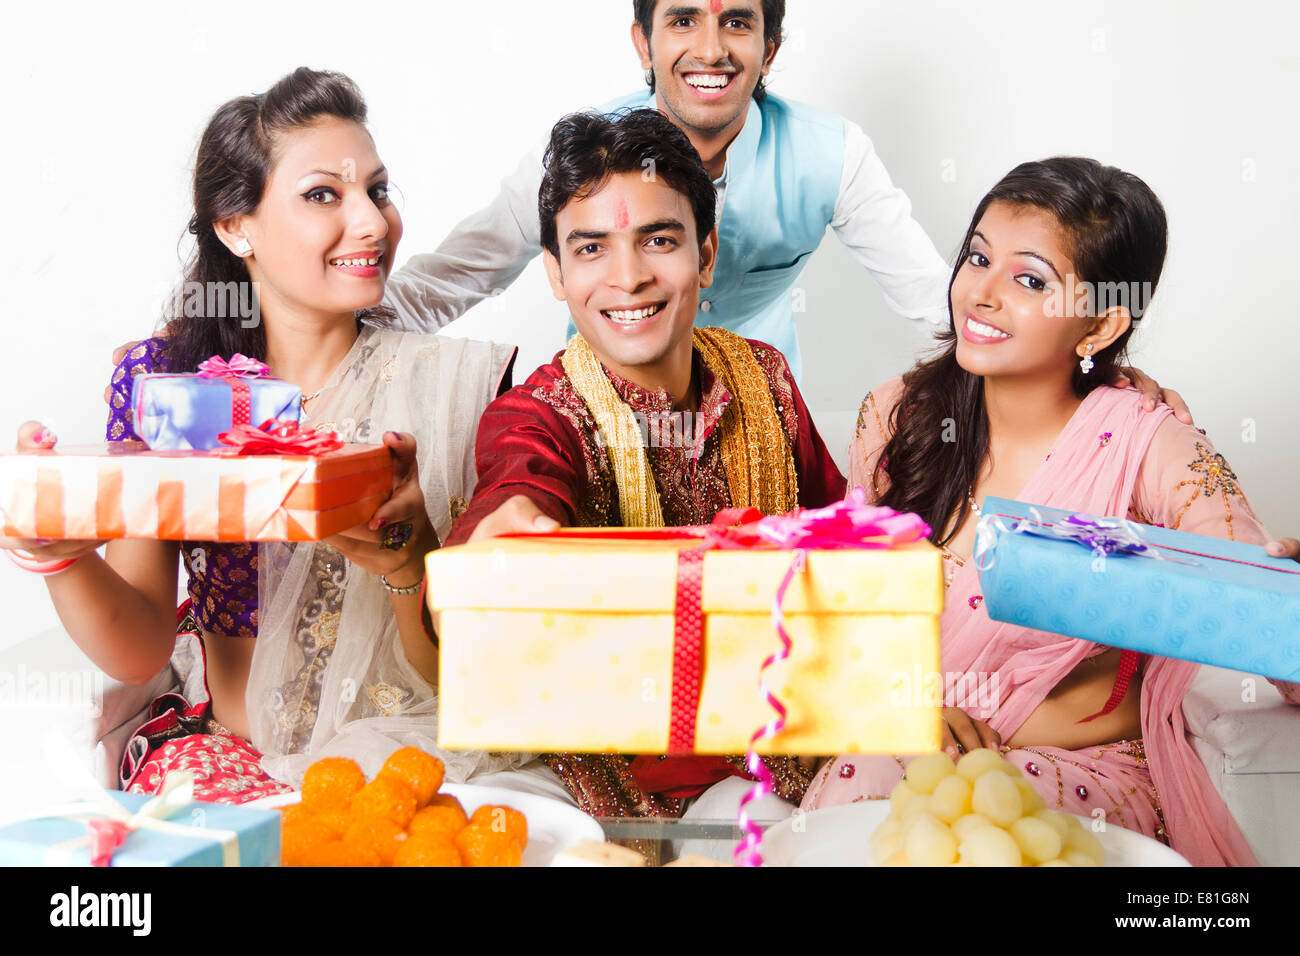 indian friends diwali gift with Sweets Stock Photo: 73793461 - Alamy for Diwali Gifts For Family  117dqh